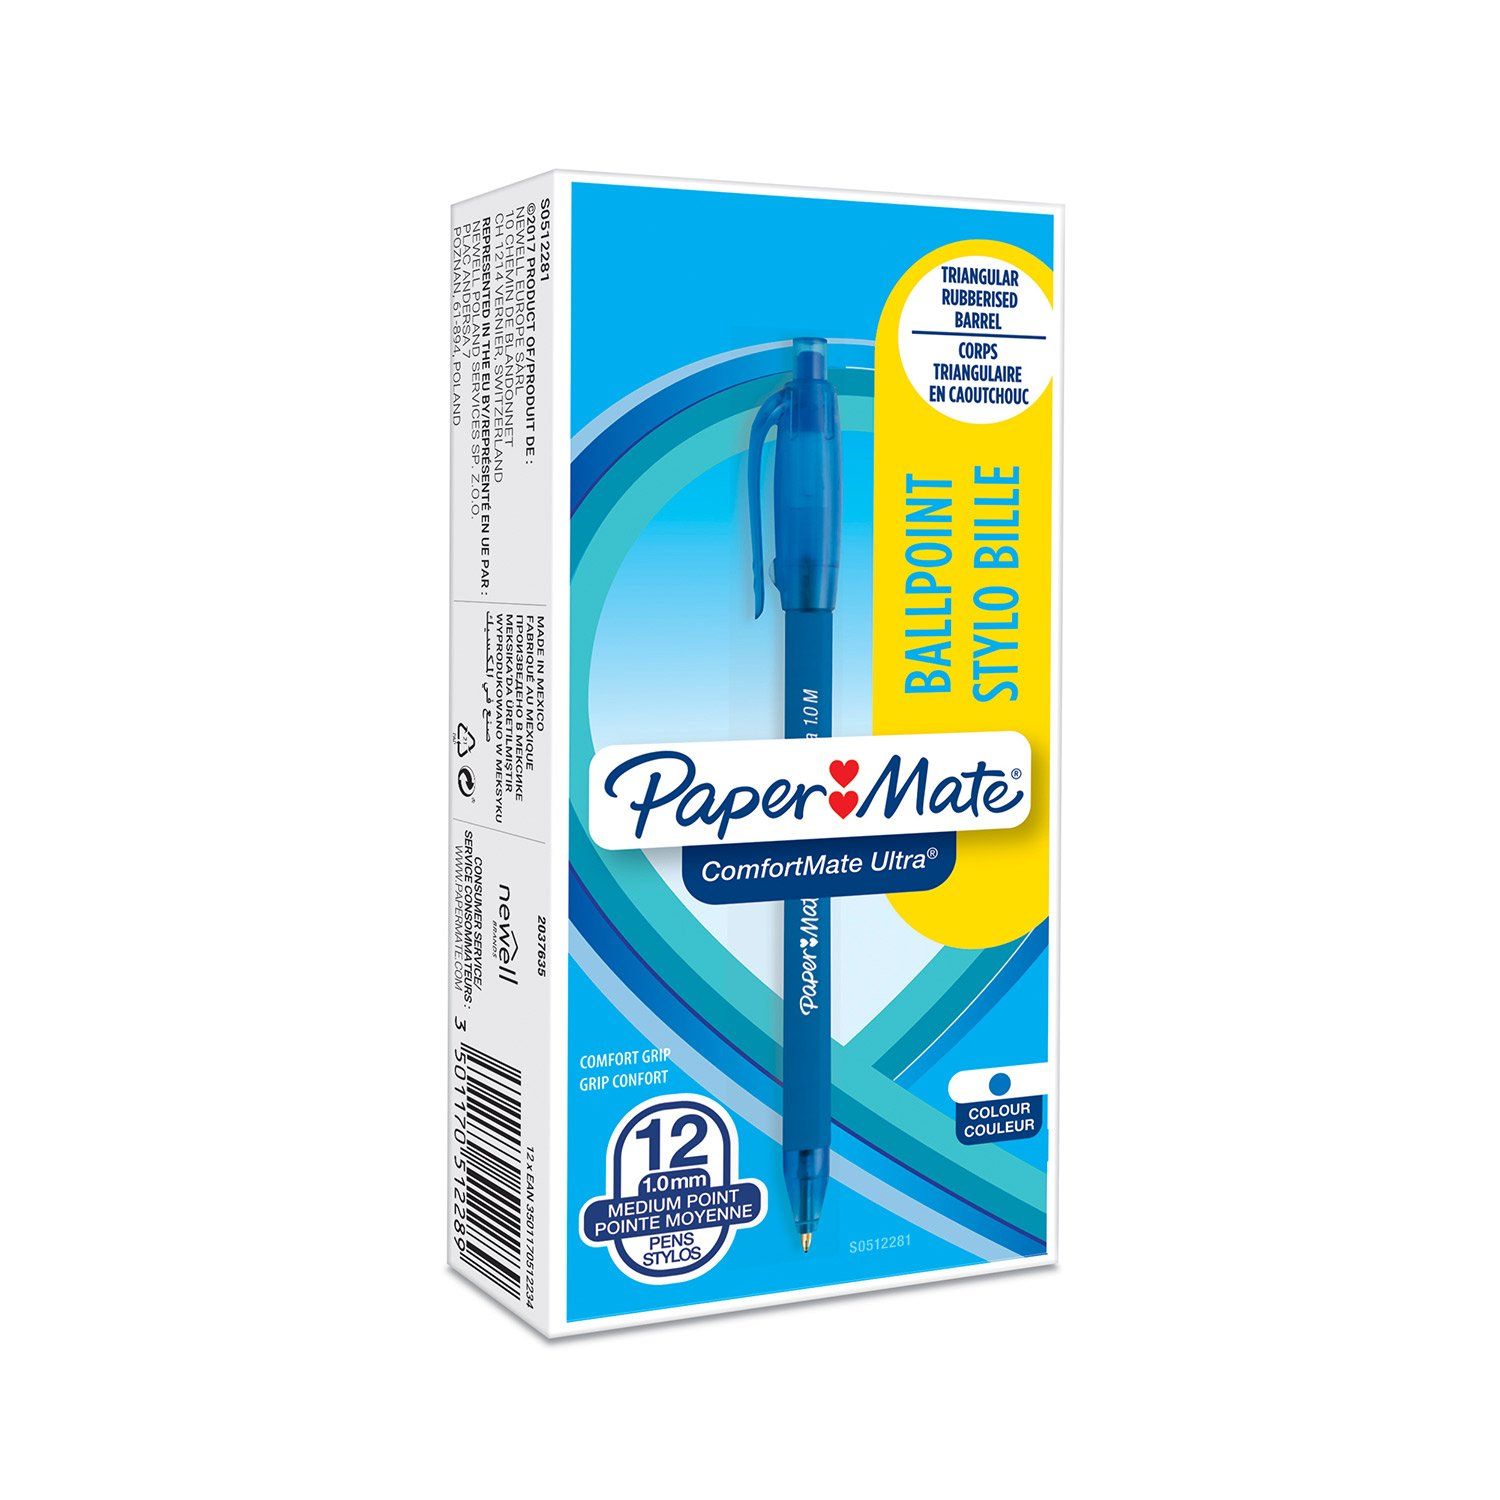 Paper Mate ComfortMate Ultra penna a sfera a scatto, punta media (1 mm), blu, confezione da 12 Newell Rubbermaid S0512281